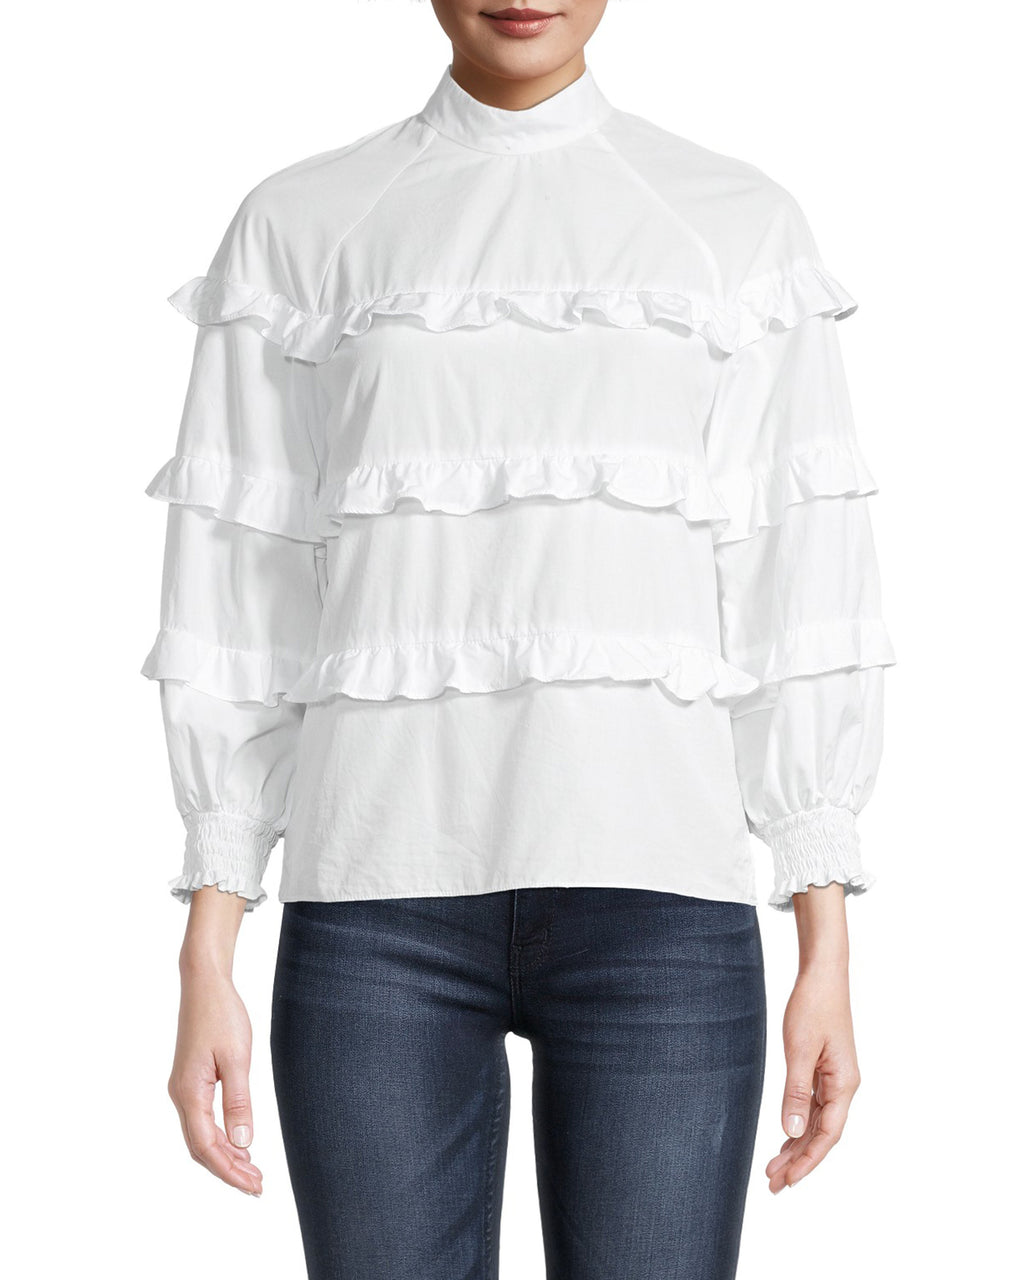 CT18751 - COTTON POPLIN RUFFLE BLOUSE - tops - blouses - We've created the perfect white blouse just for you. This long sleeve style has tiered ruffles down the bodice and cuffed sleeves. Add 1 line break Stylist Tip: pair with our wide leg jeans for a laid back look.